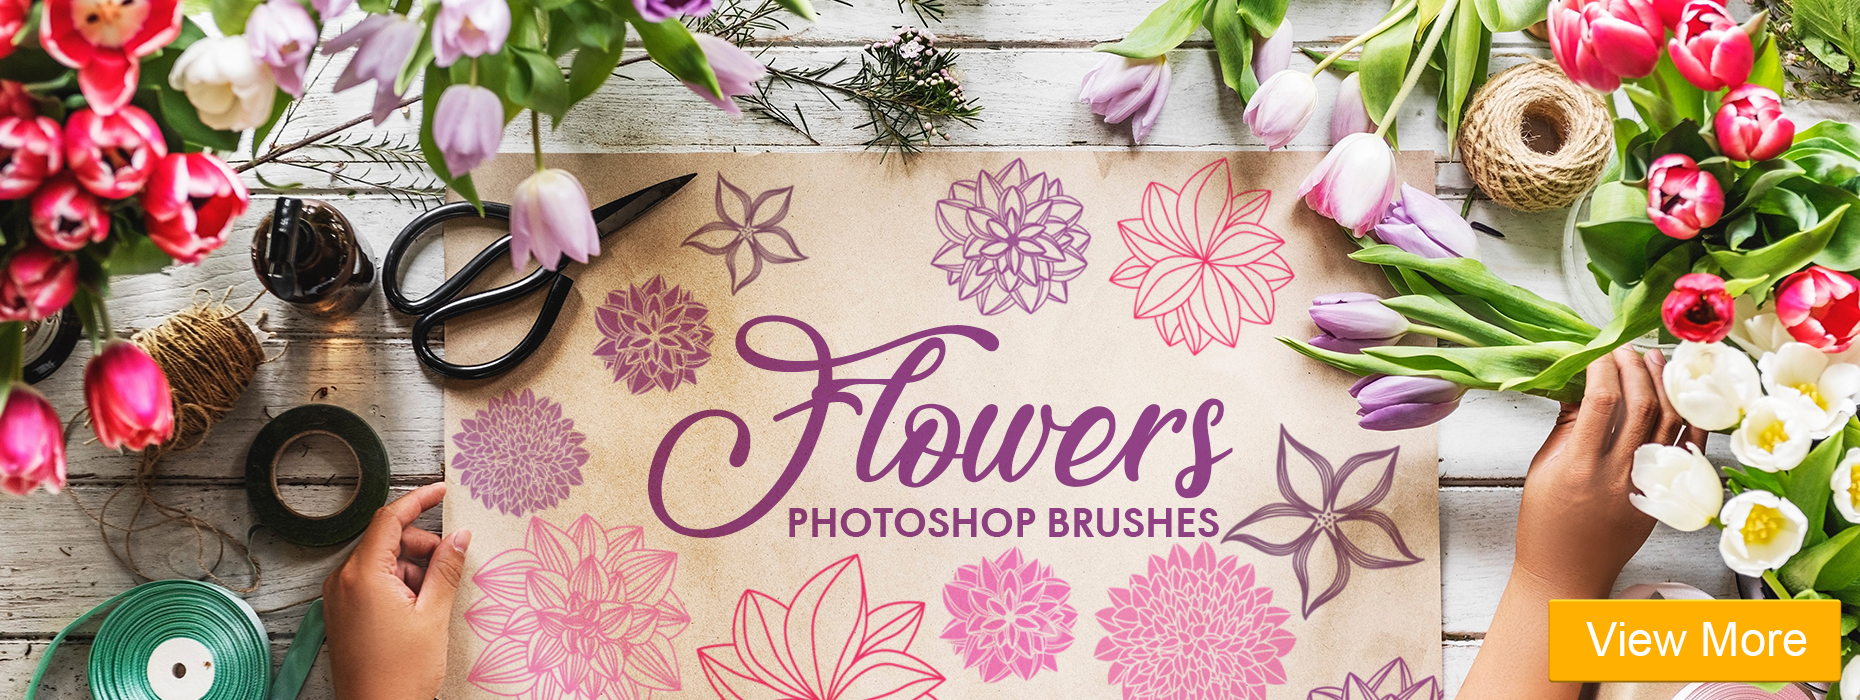 free photoshop Hair brushes flowers photoshop brushes banner